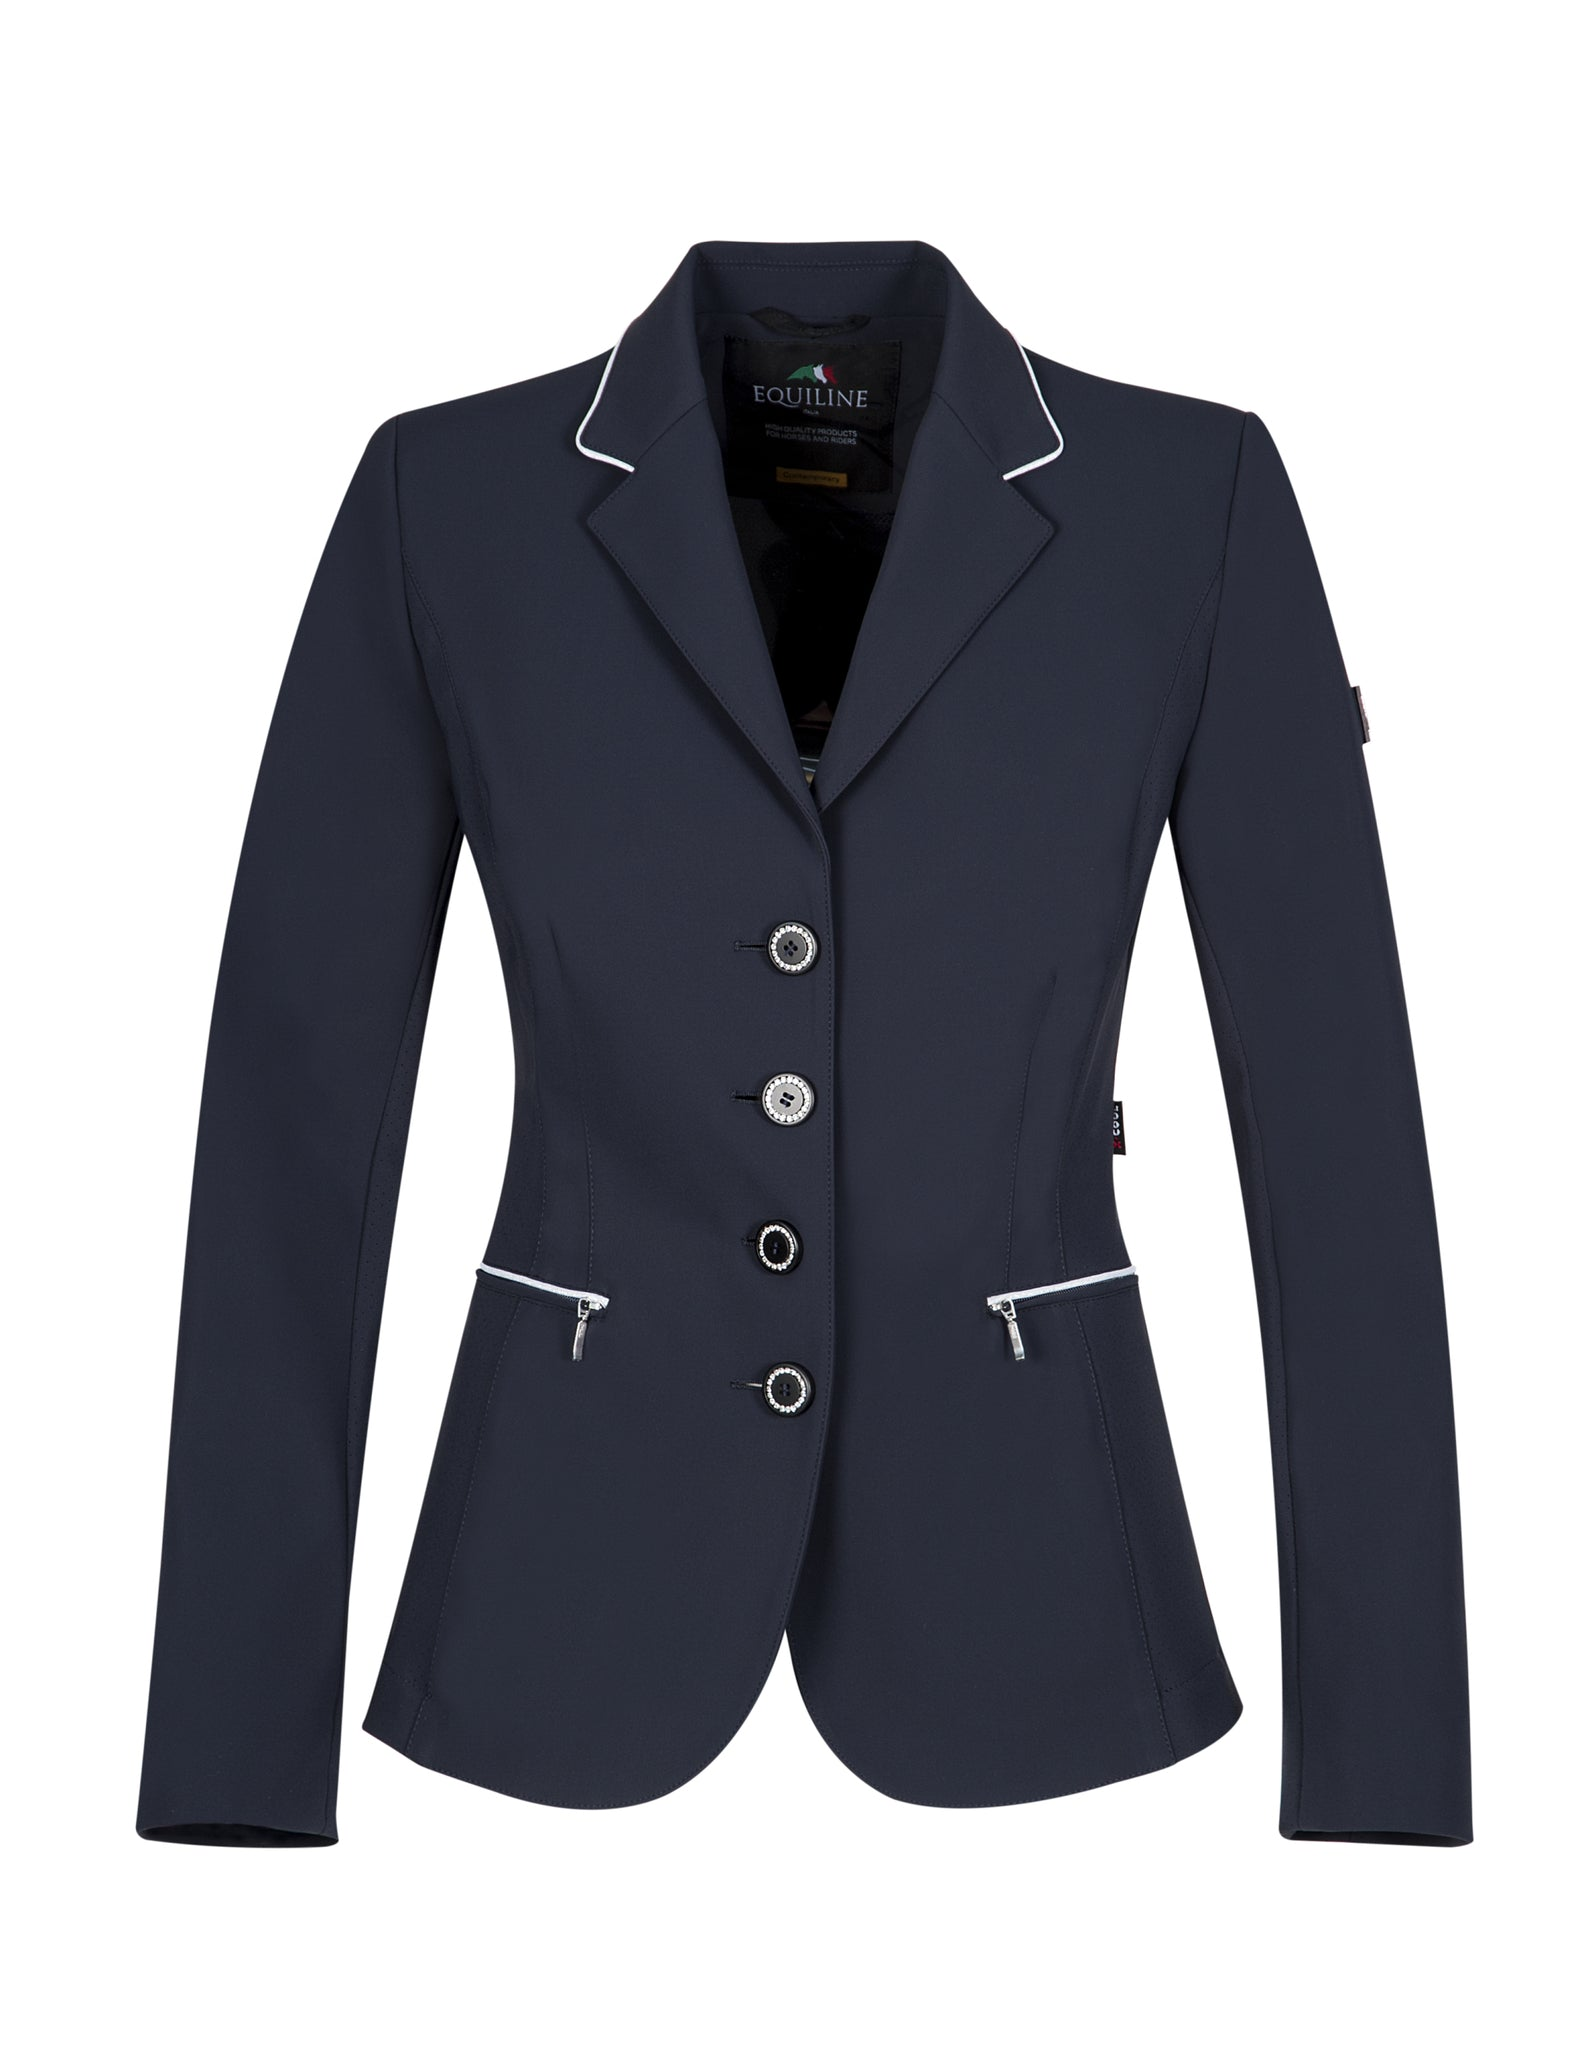 Ladies Show Jacket GAIT by Equiline